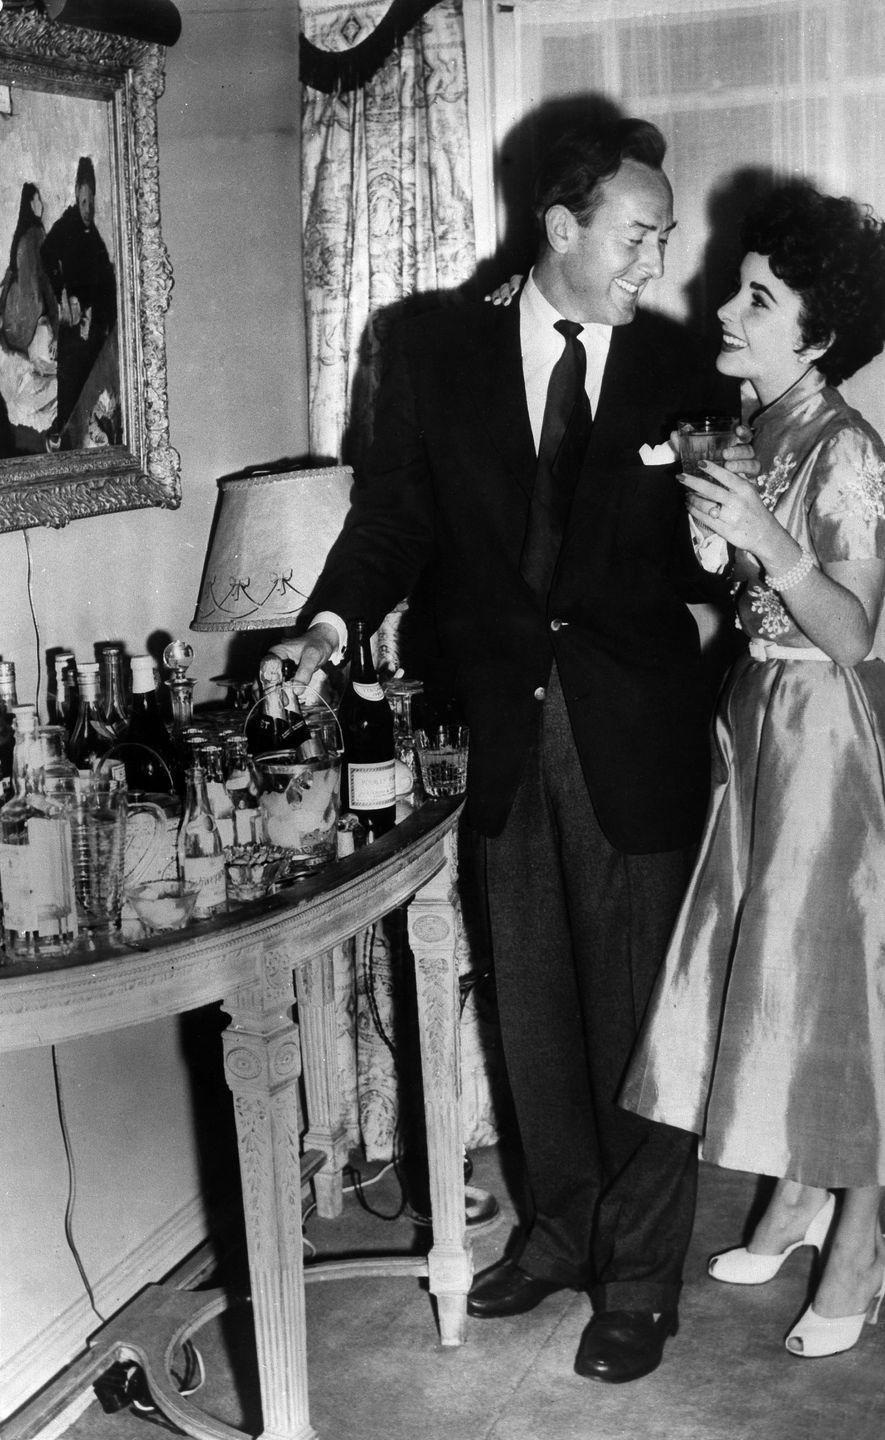 <p>Elizabeth wed beau Michael Wilding in February 1952. The two British-born actors had a low-key ceremony at Caxton Hall in London. </p>